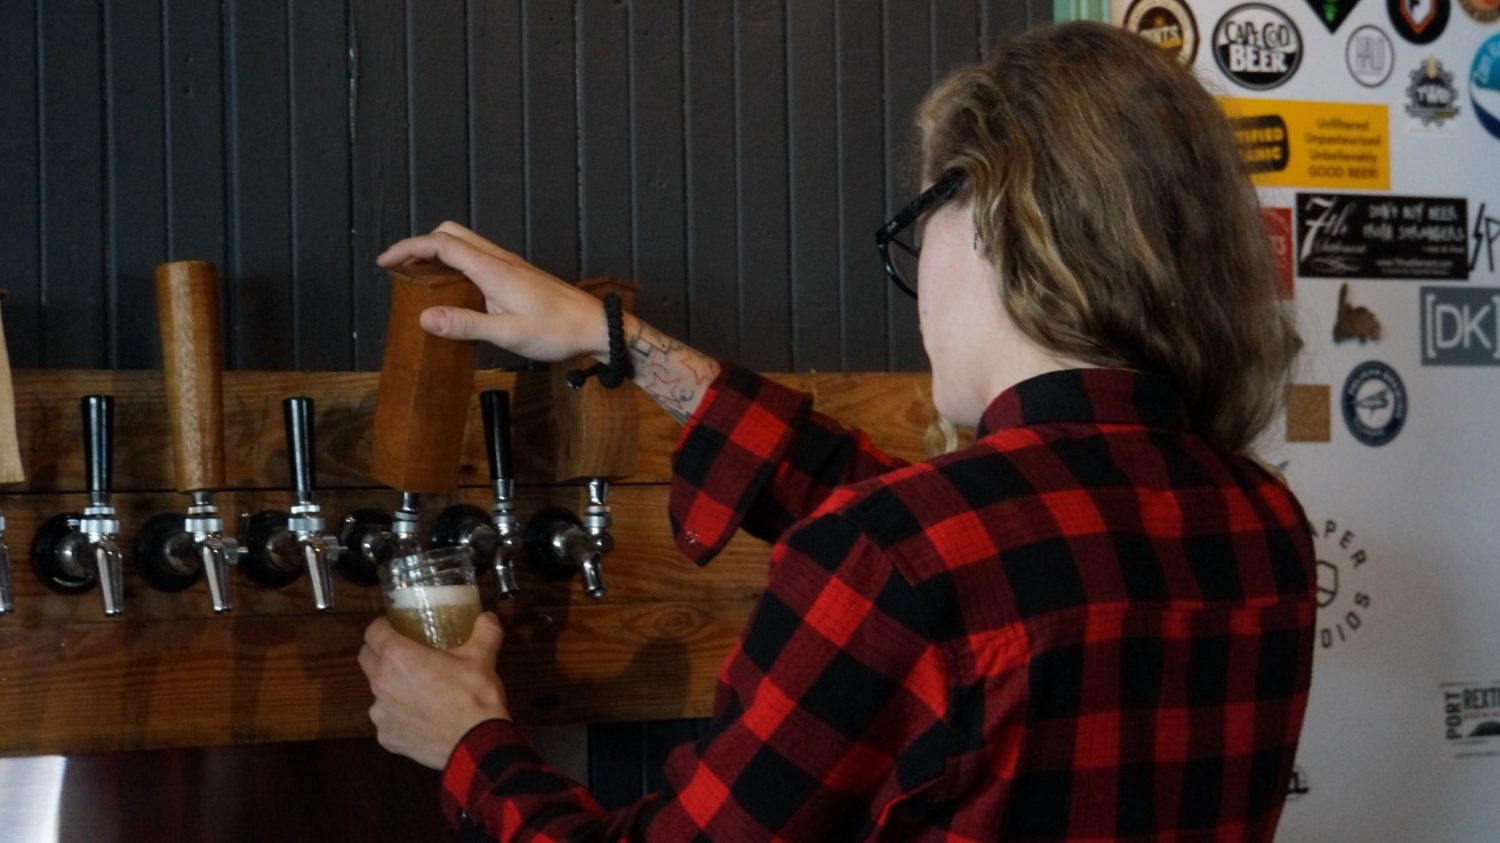 A girl in a plaid shirt pulls a pint of beer